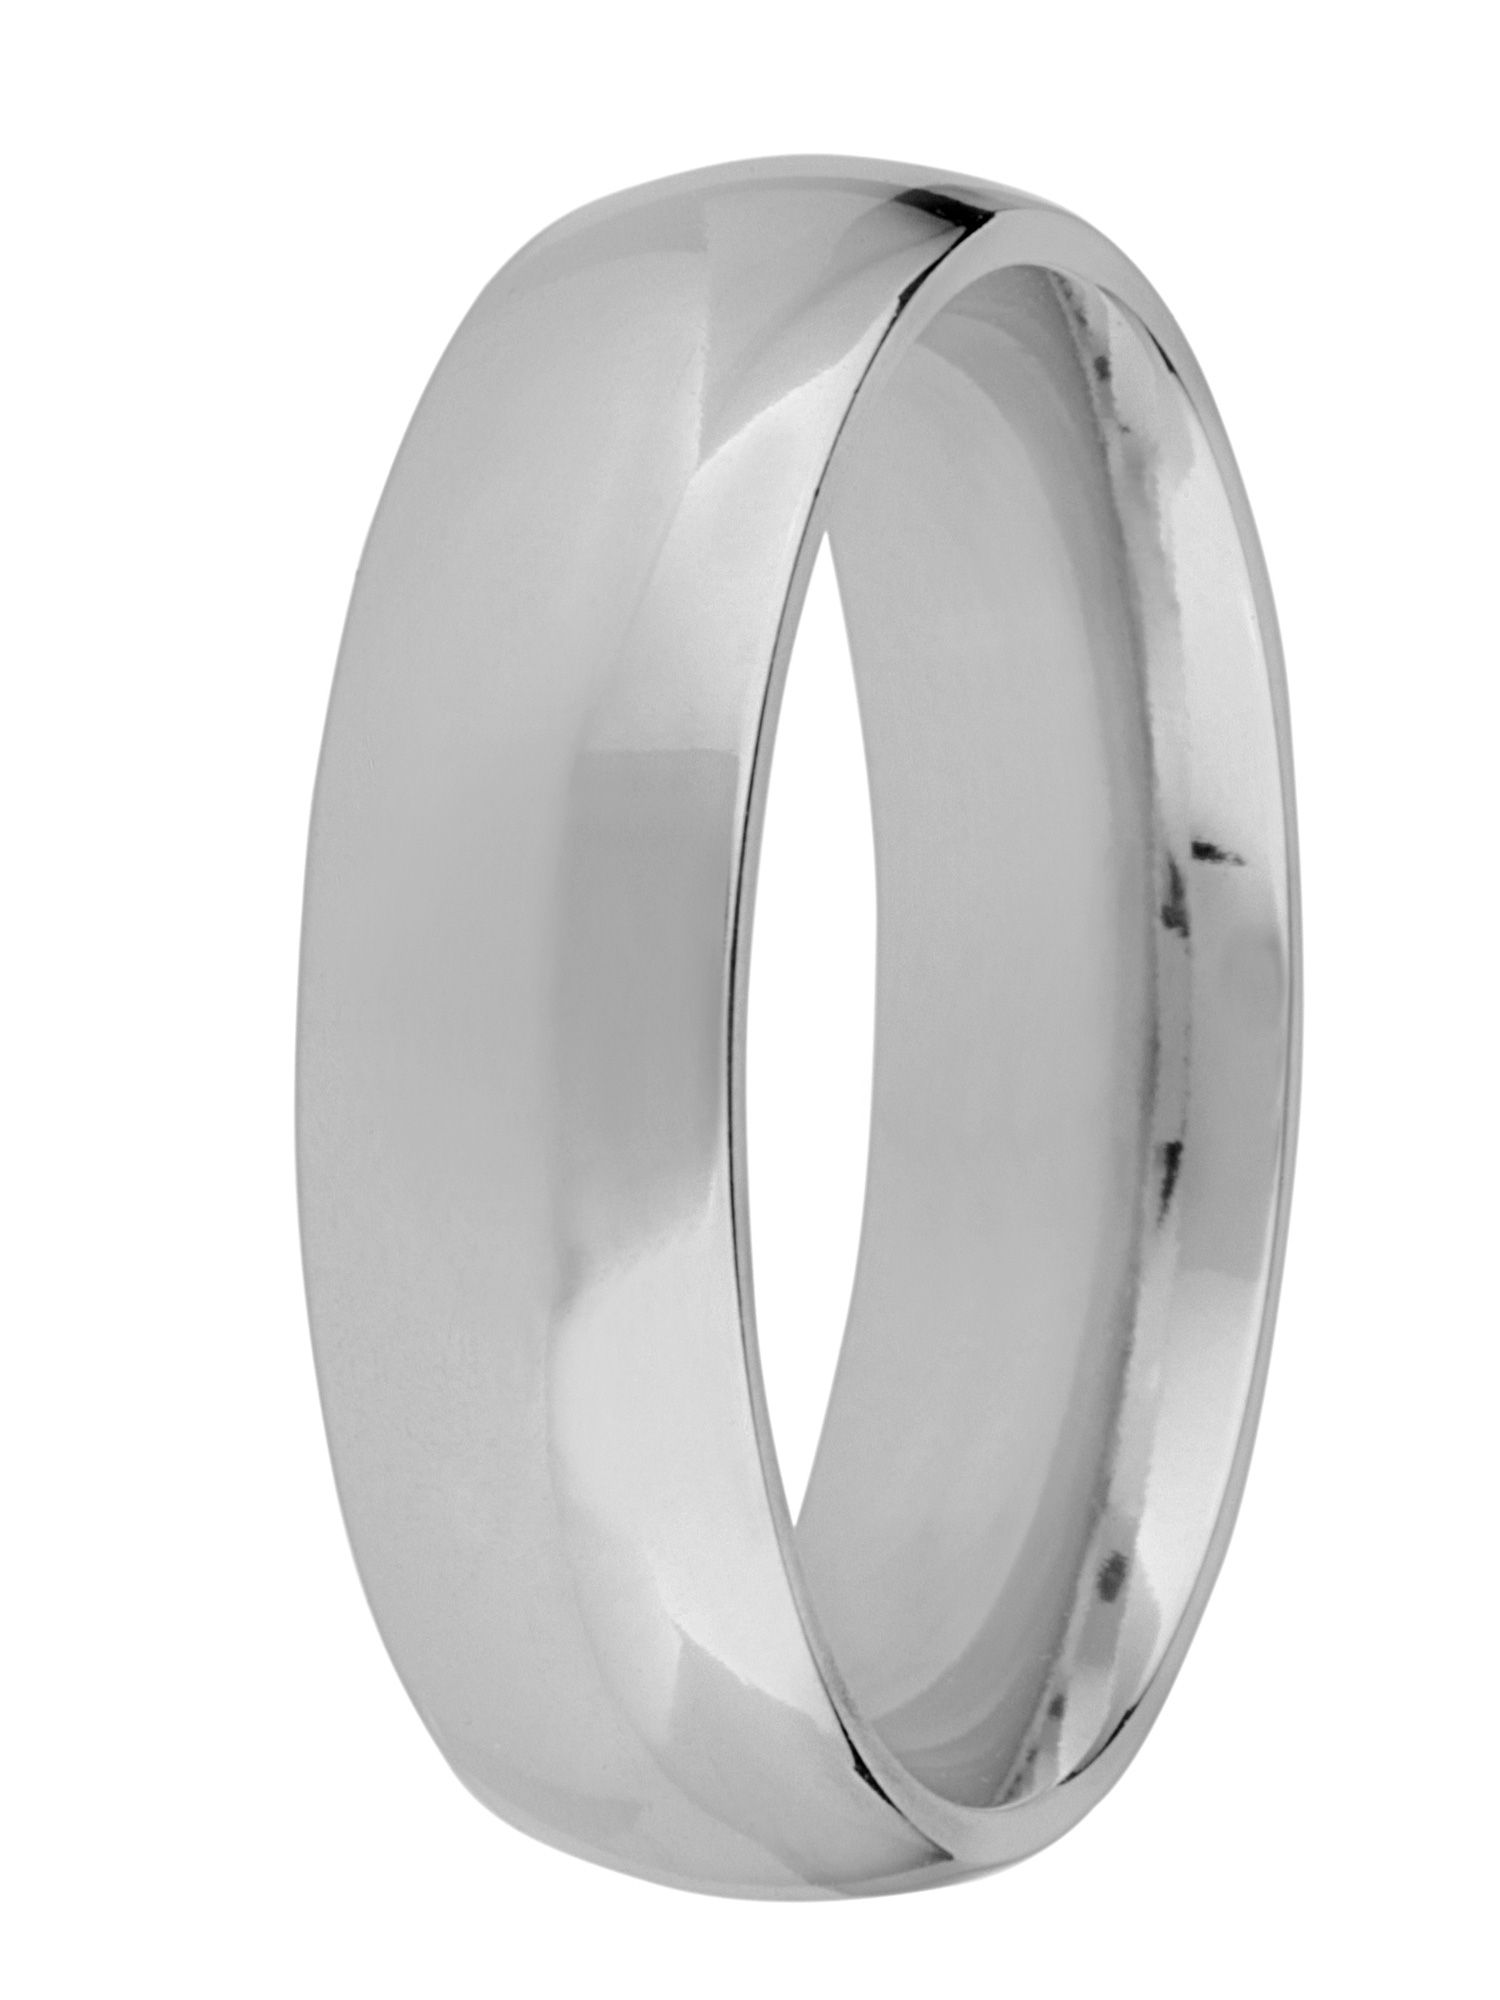 Grooms palladium heavy court 7mm wedding ring - Silver